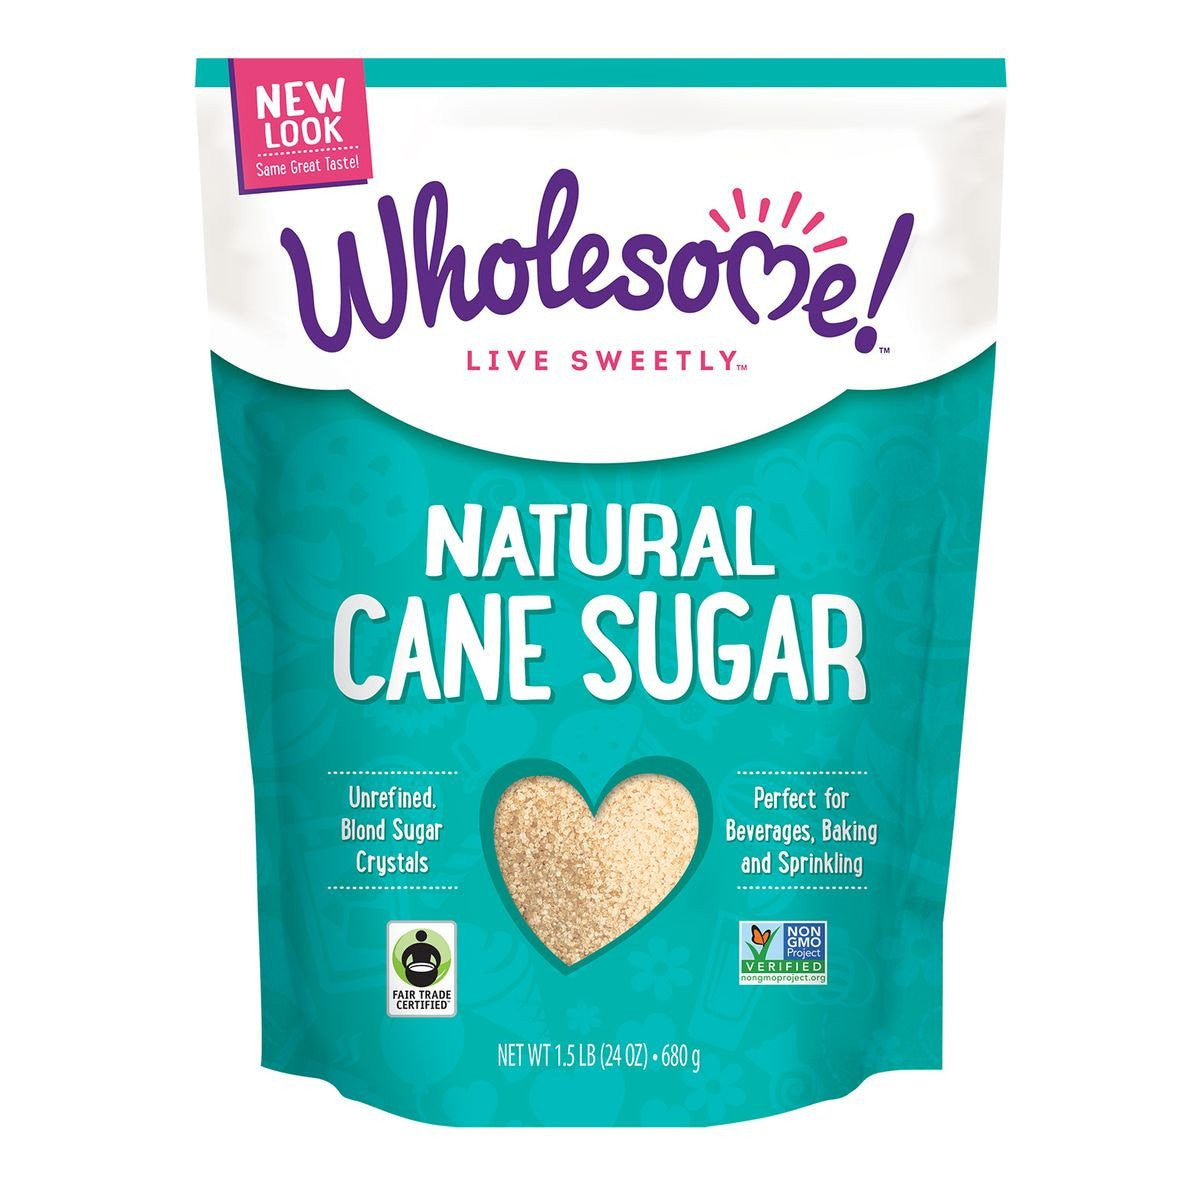 Wholesome Sweeteners Natural Cane Sugar, 24 Oz (Pack of 12)